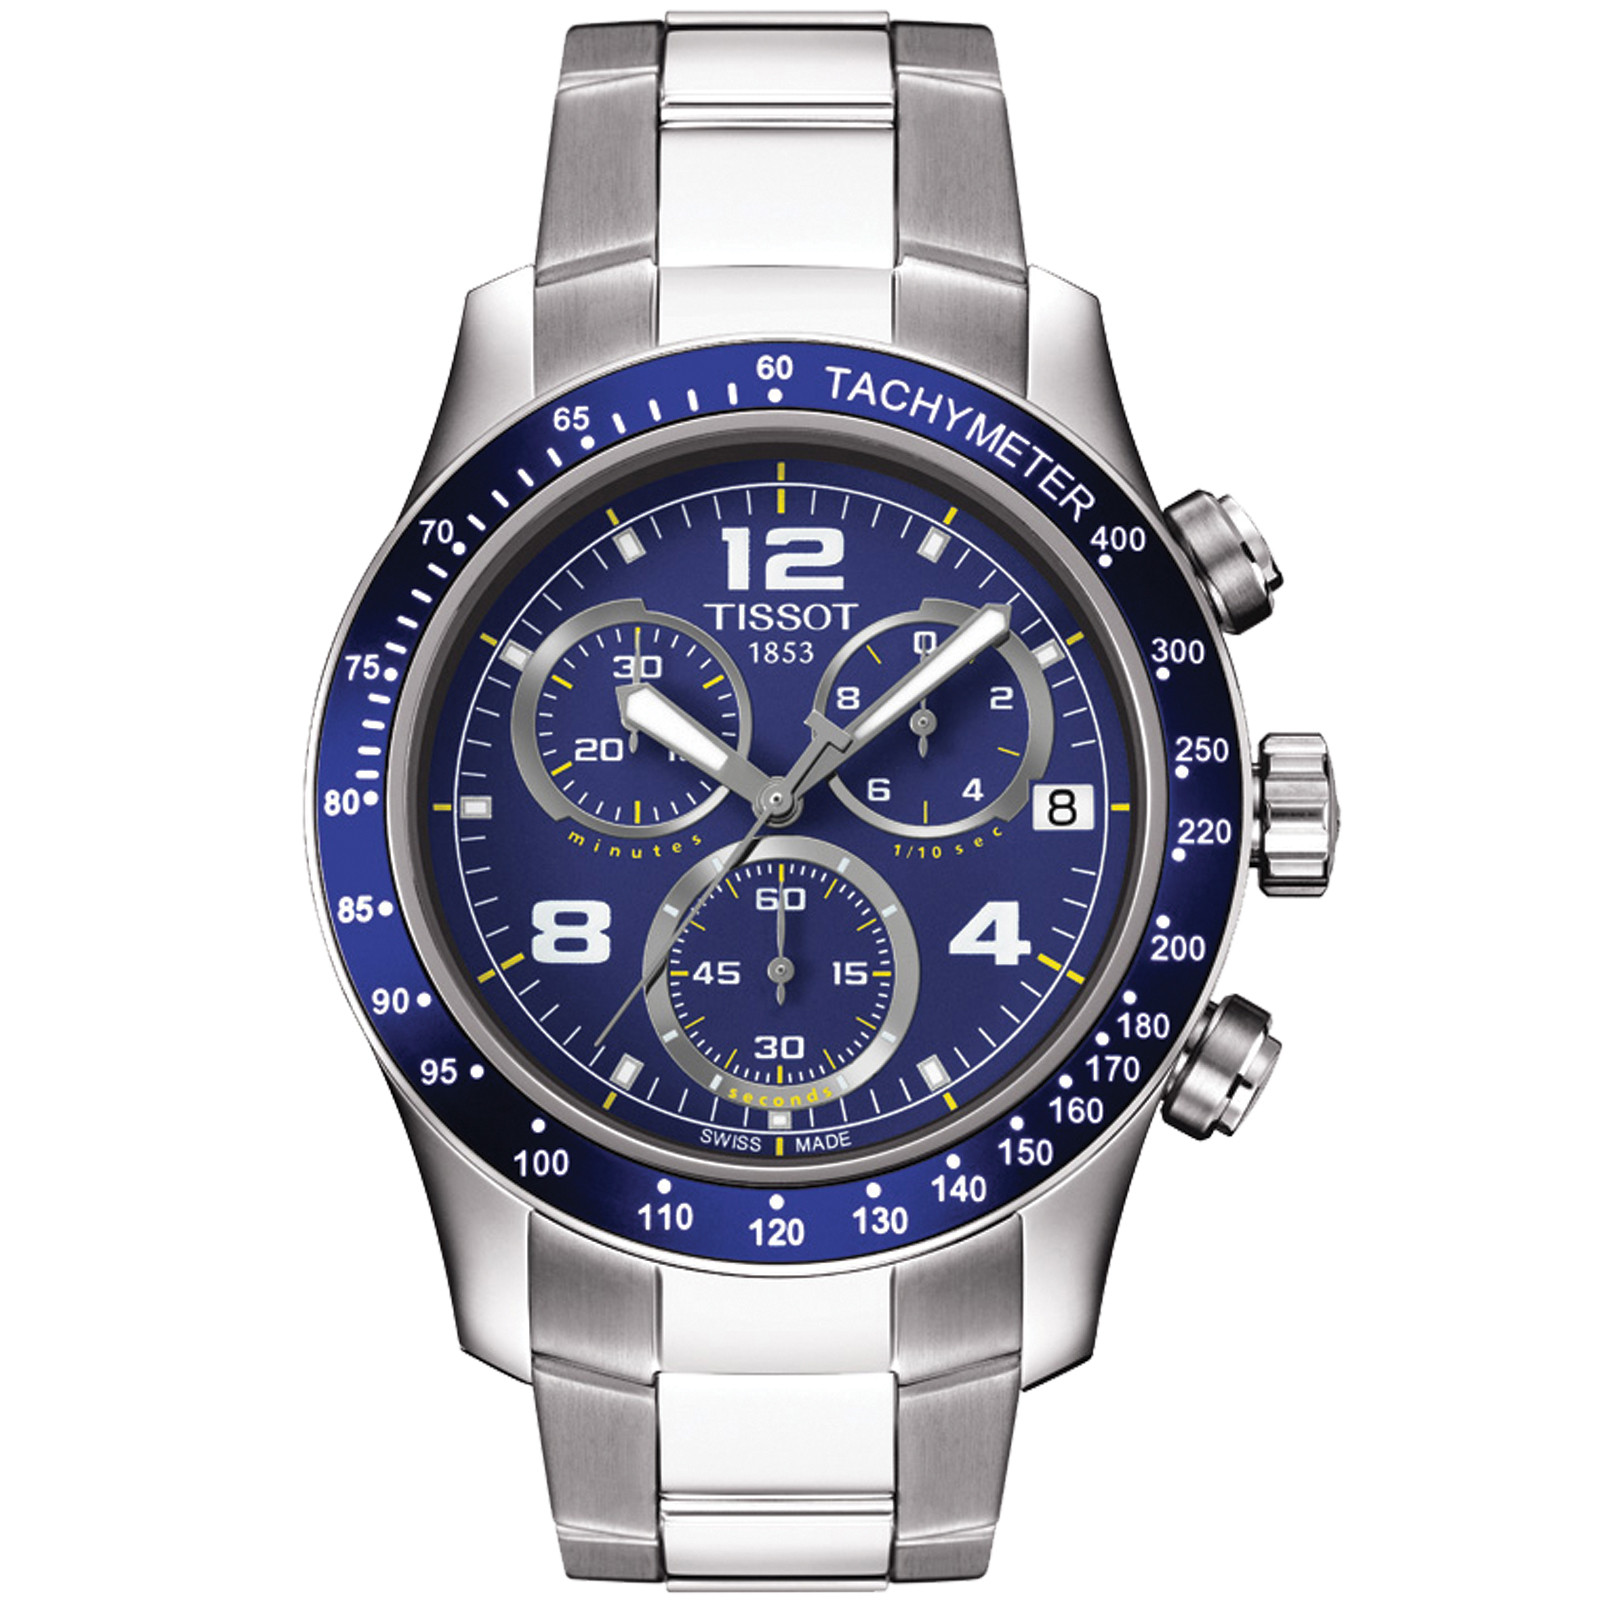 Tissot V8 Chronograph watch